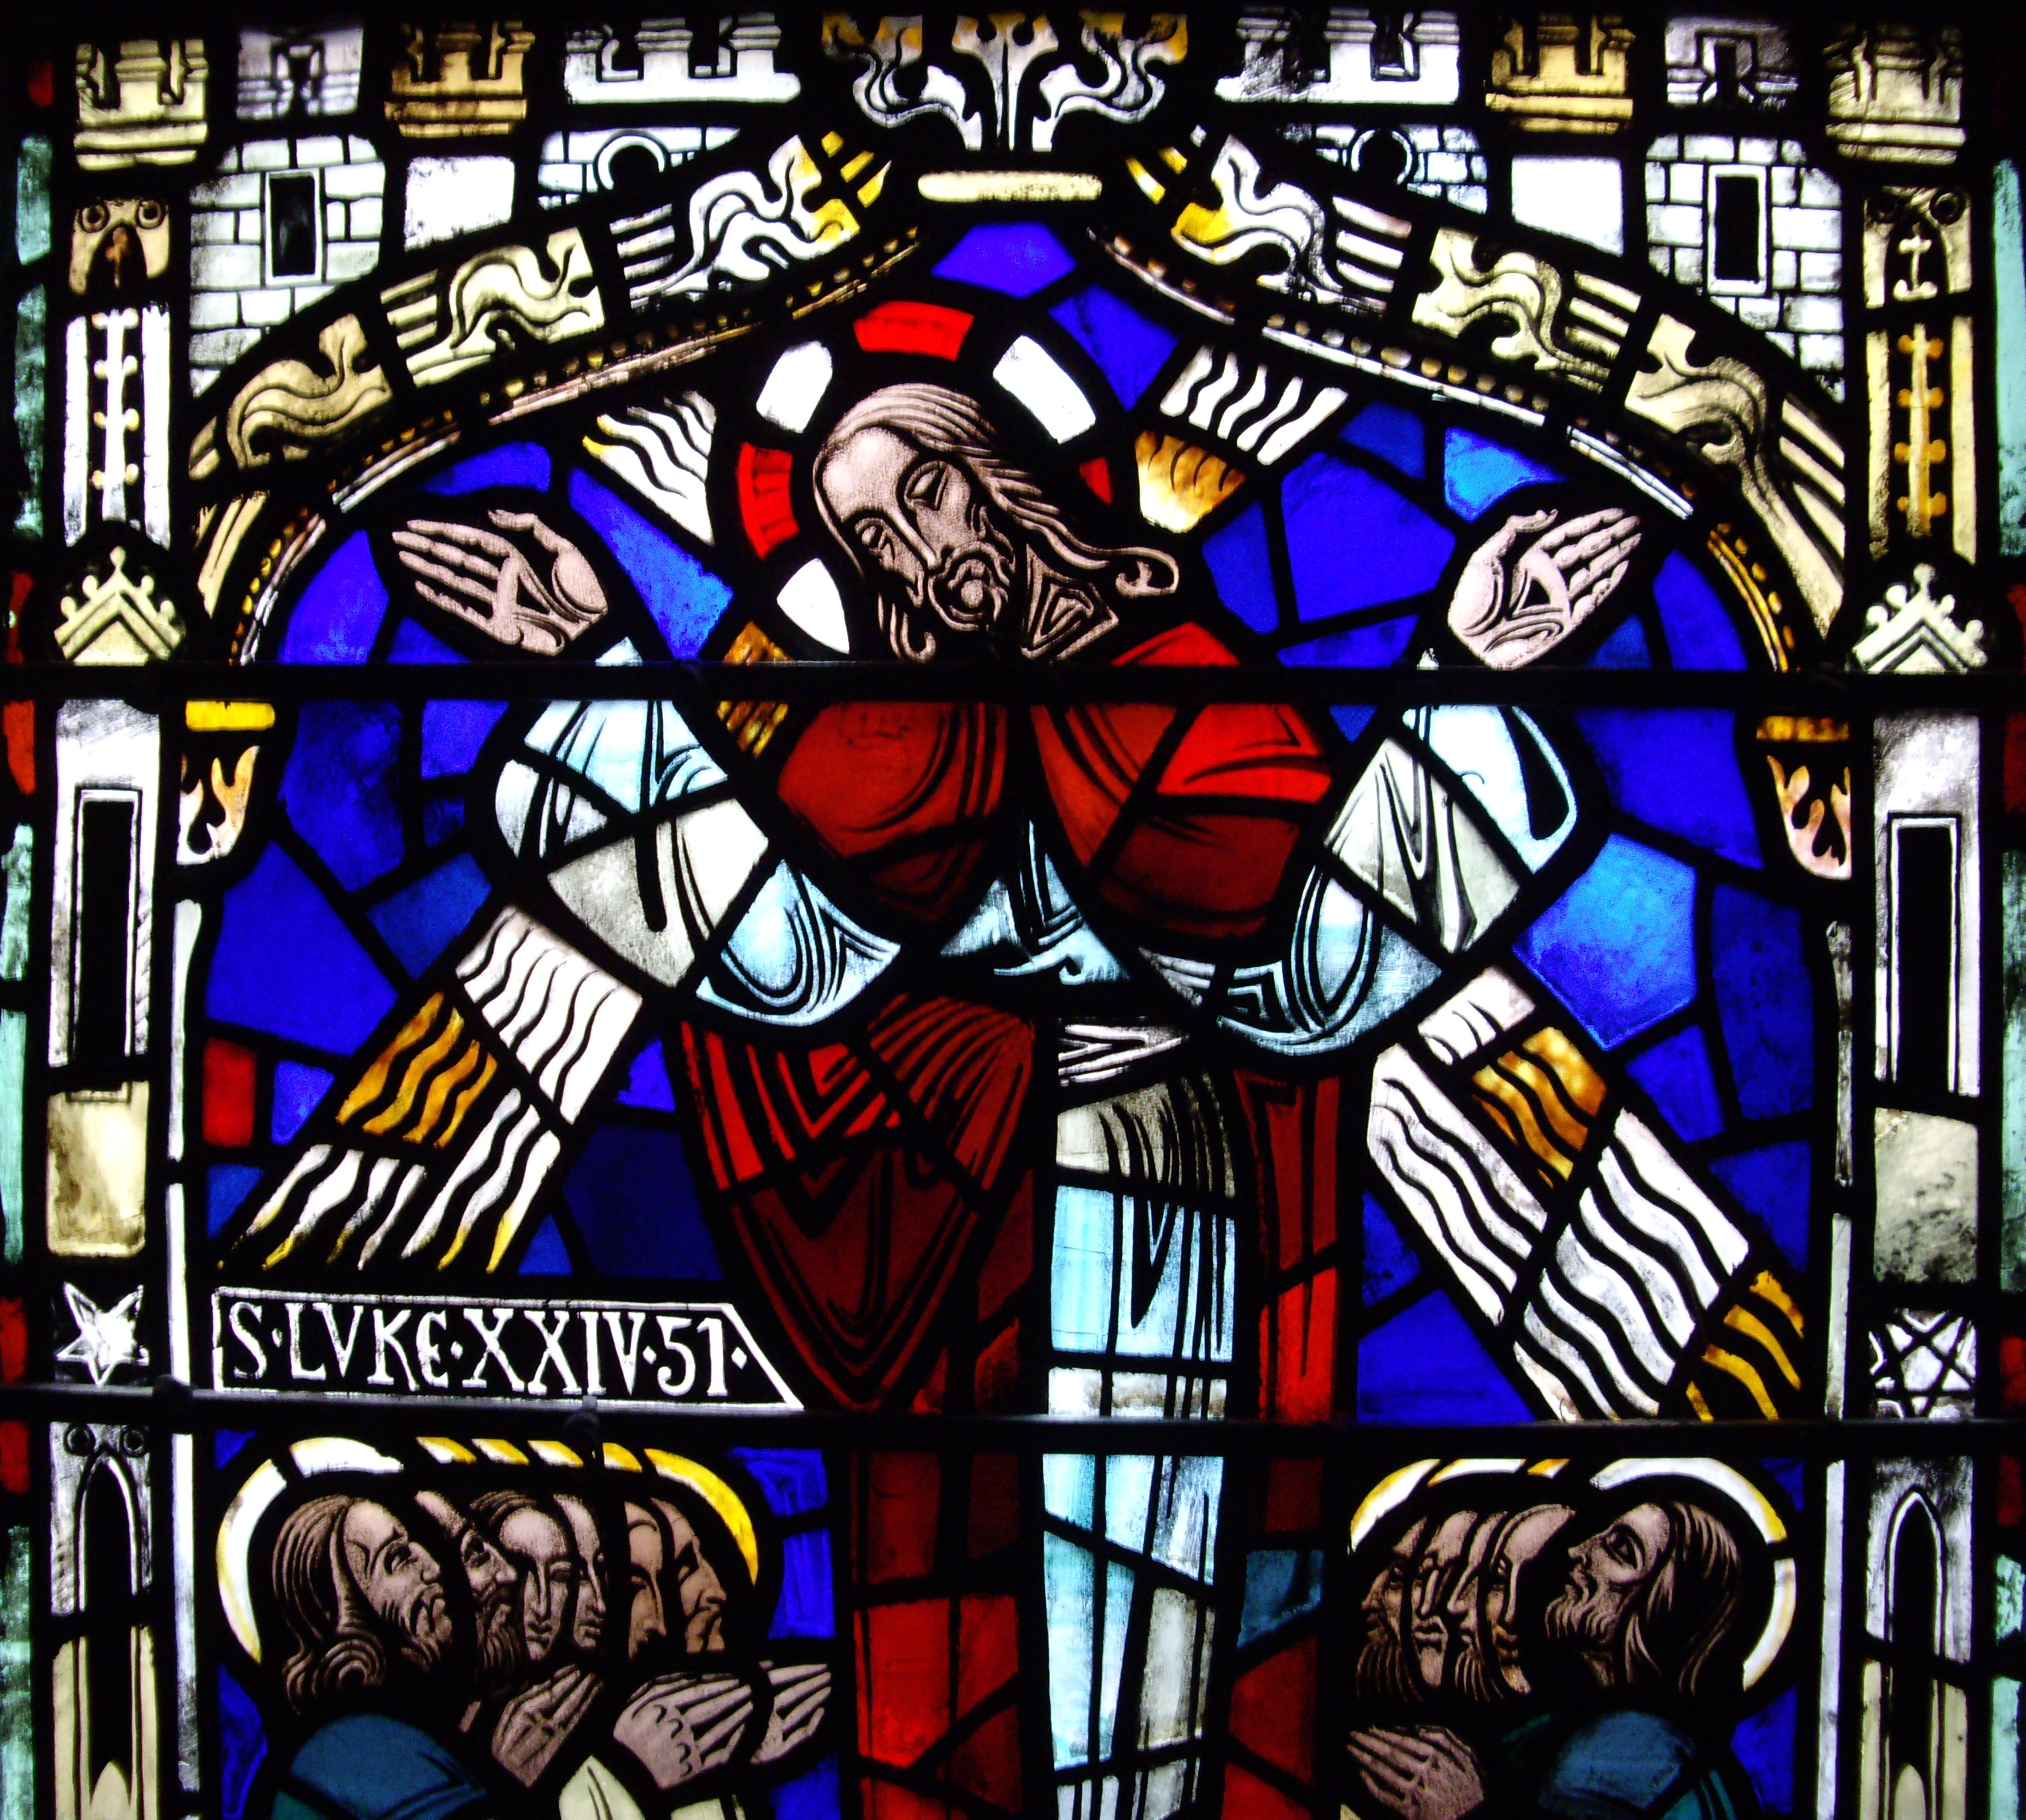 Ascension Day, celebrated on the 40th day after Easter, is always a Thursday and marks the last post-Resurrection appearance of Christ to the apostles.